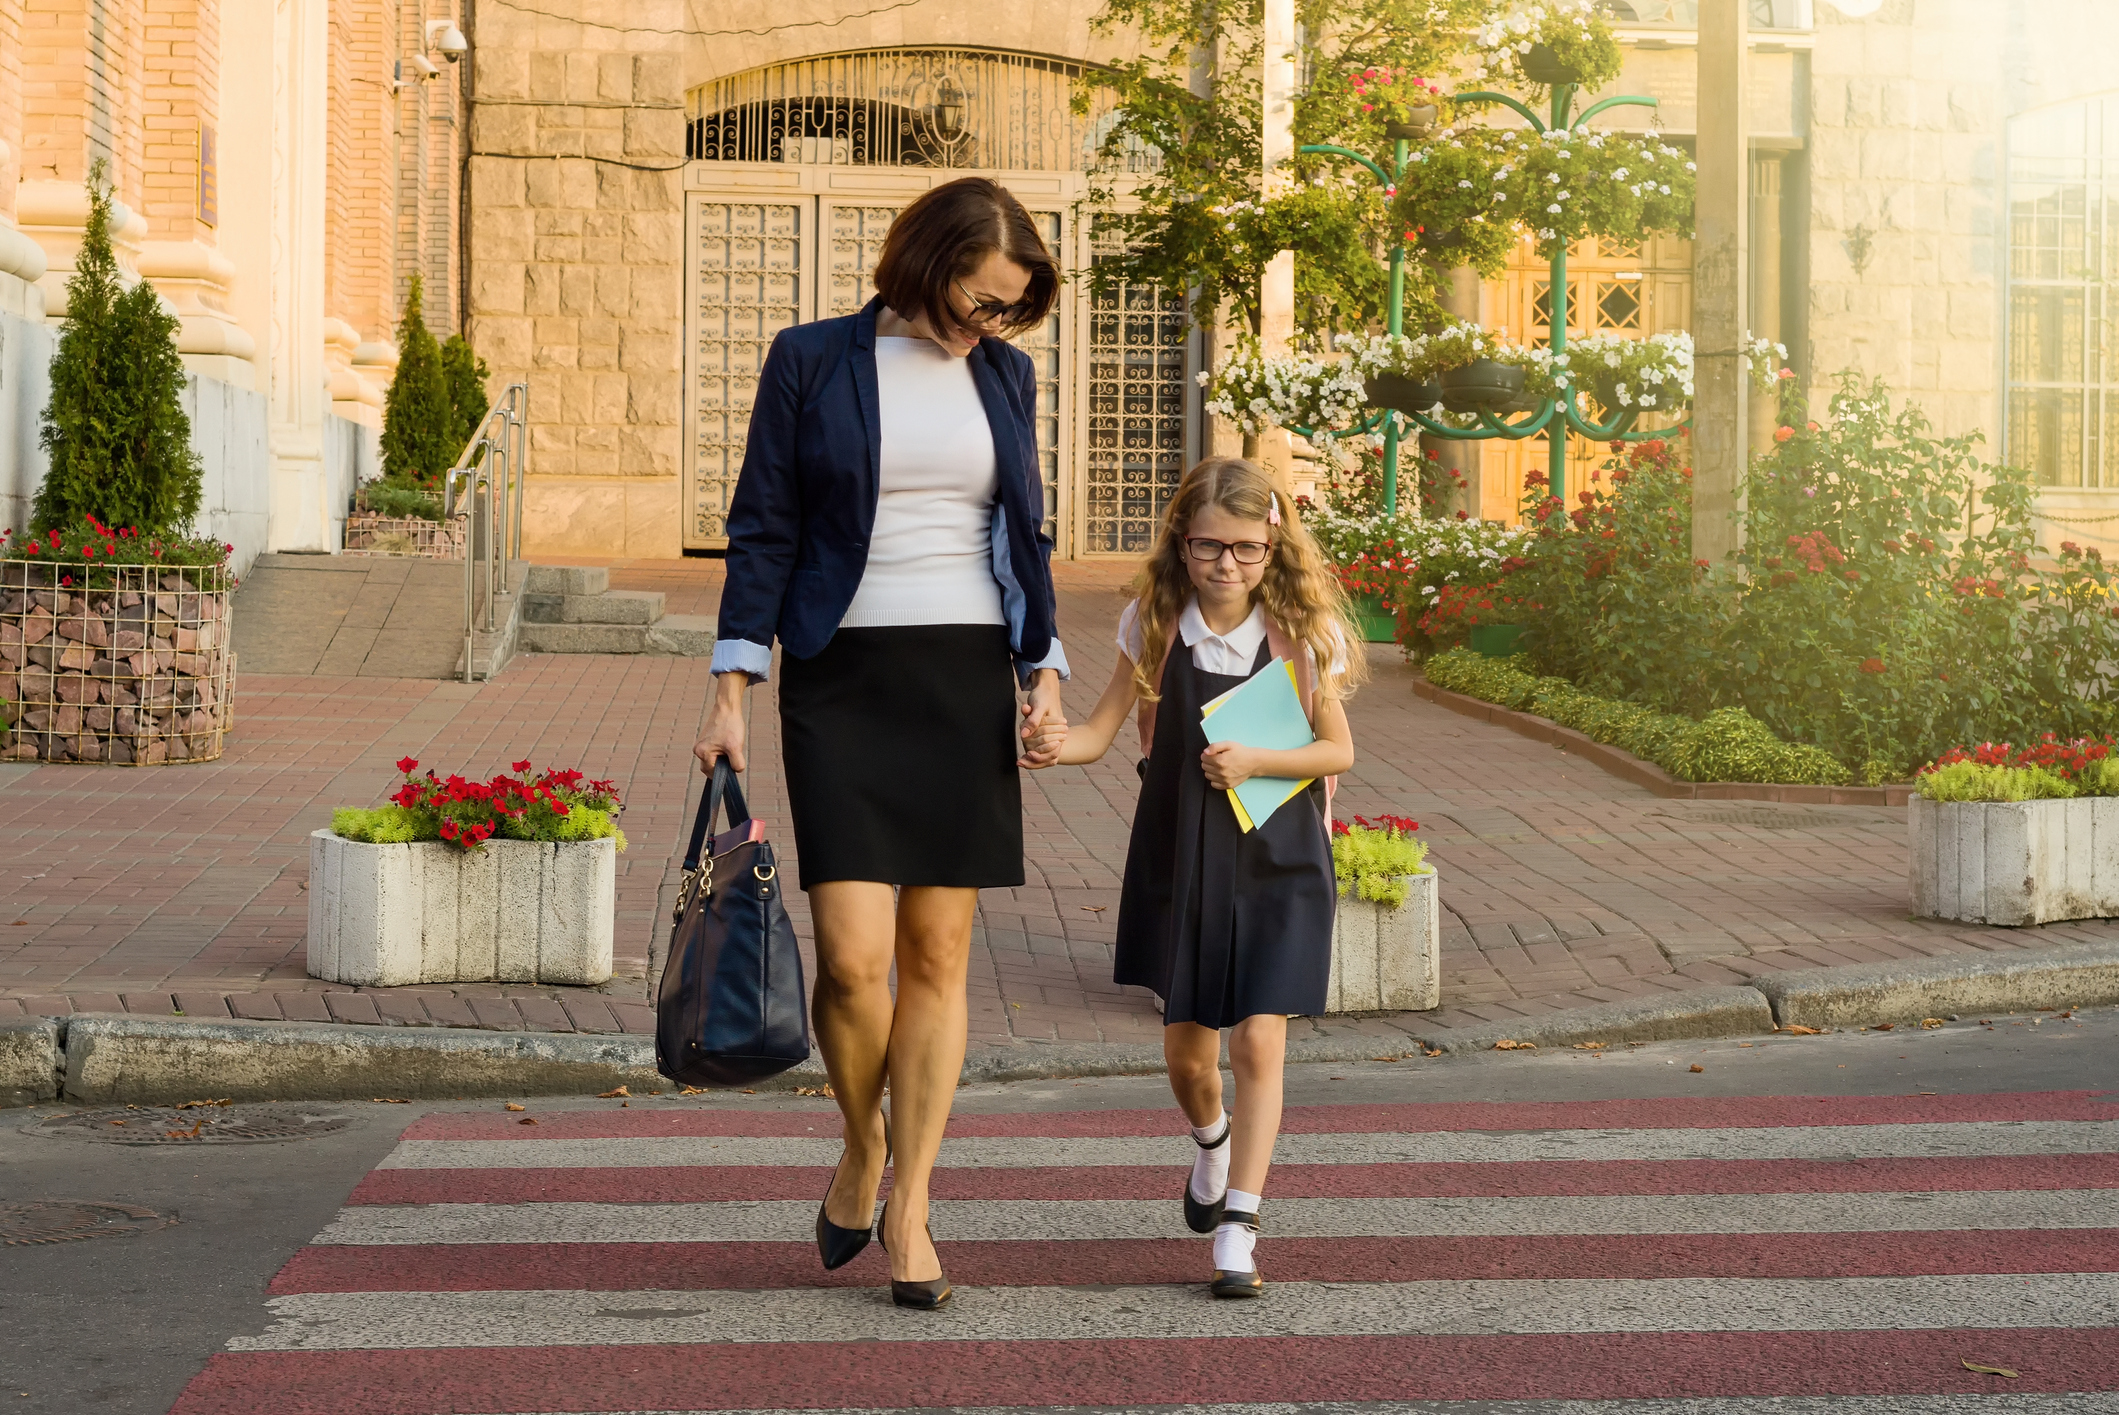 mum picking up her daughter from school and walking home